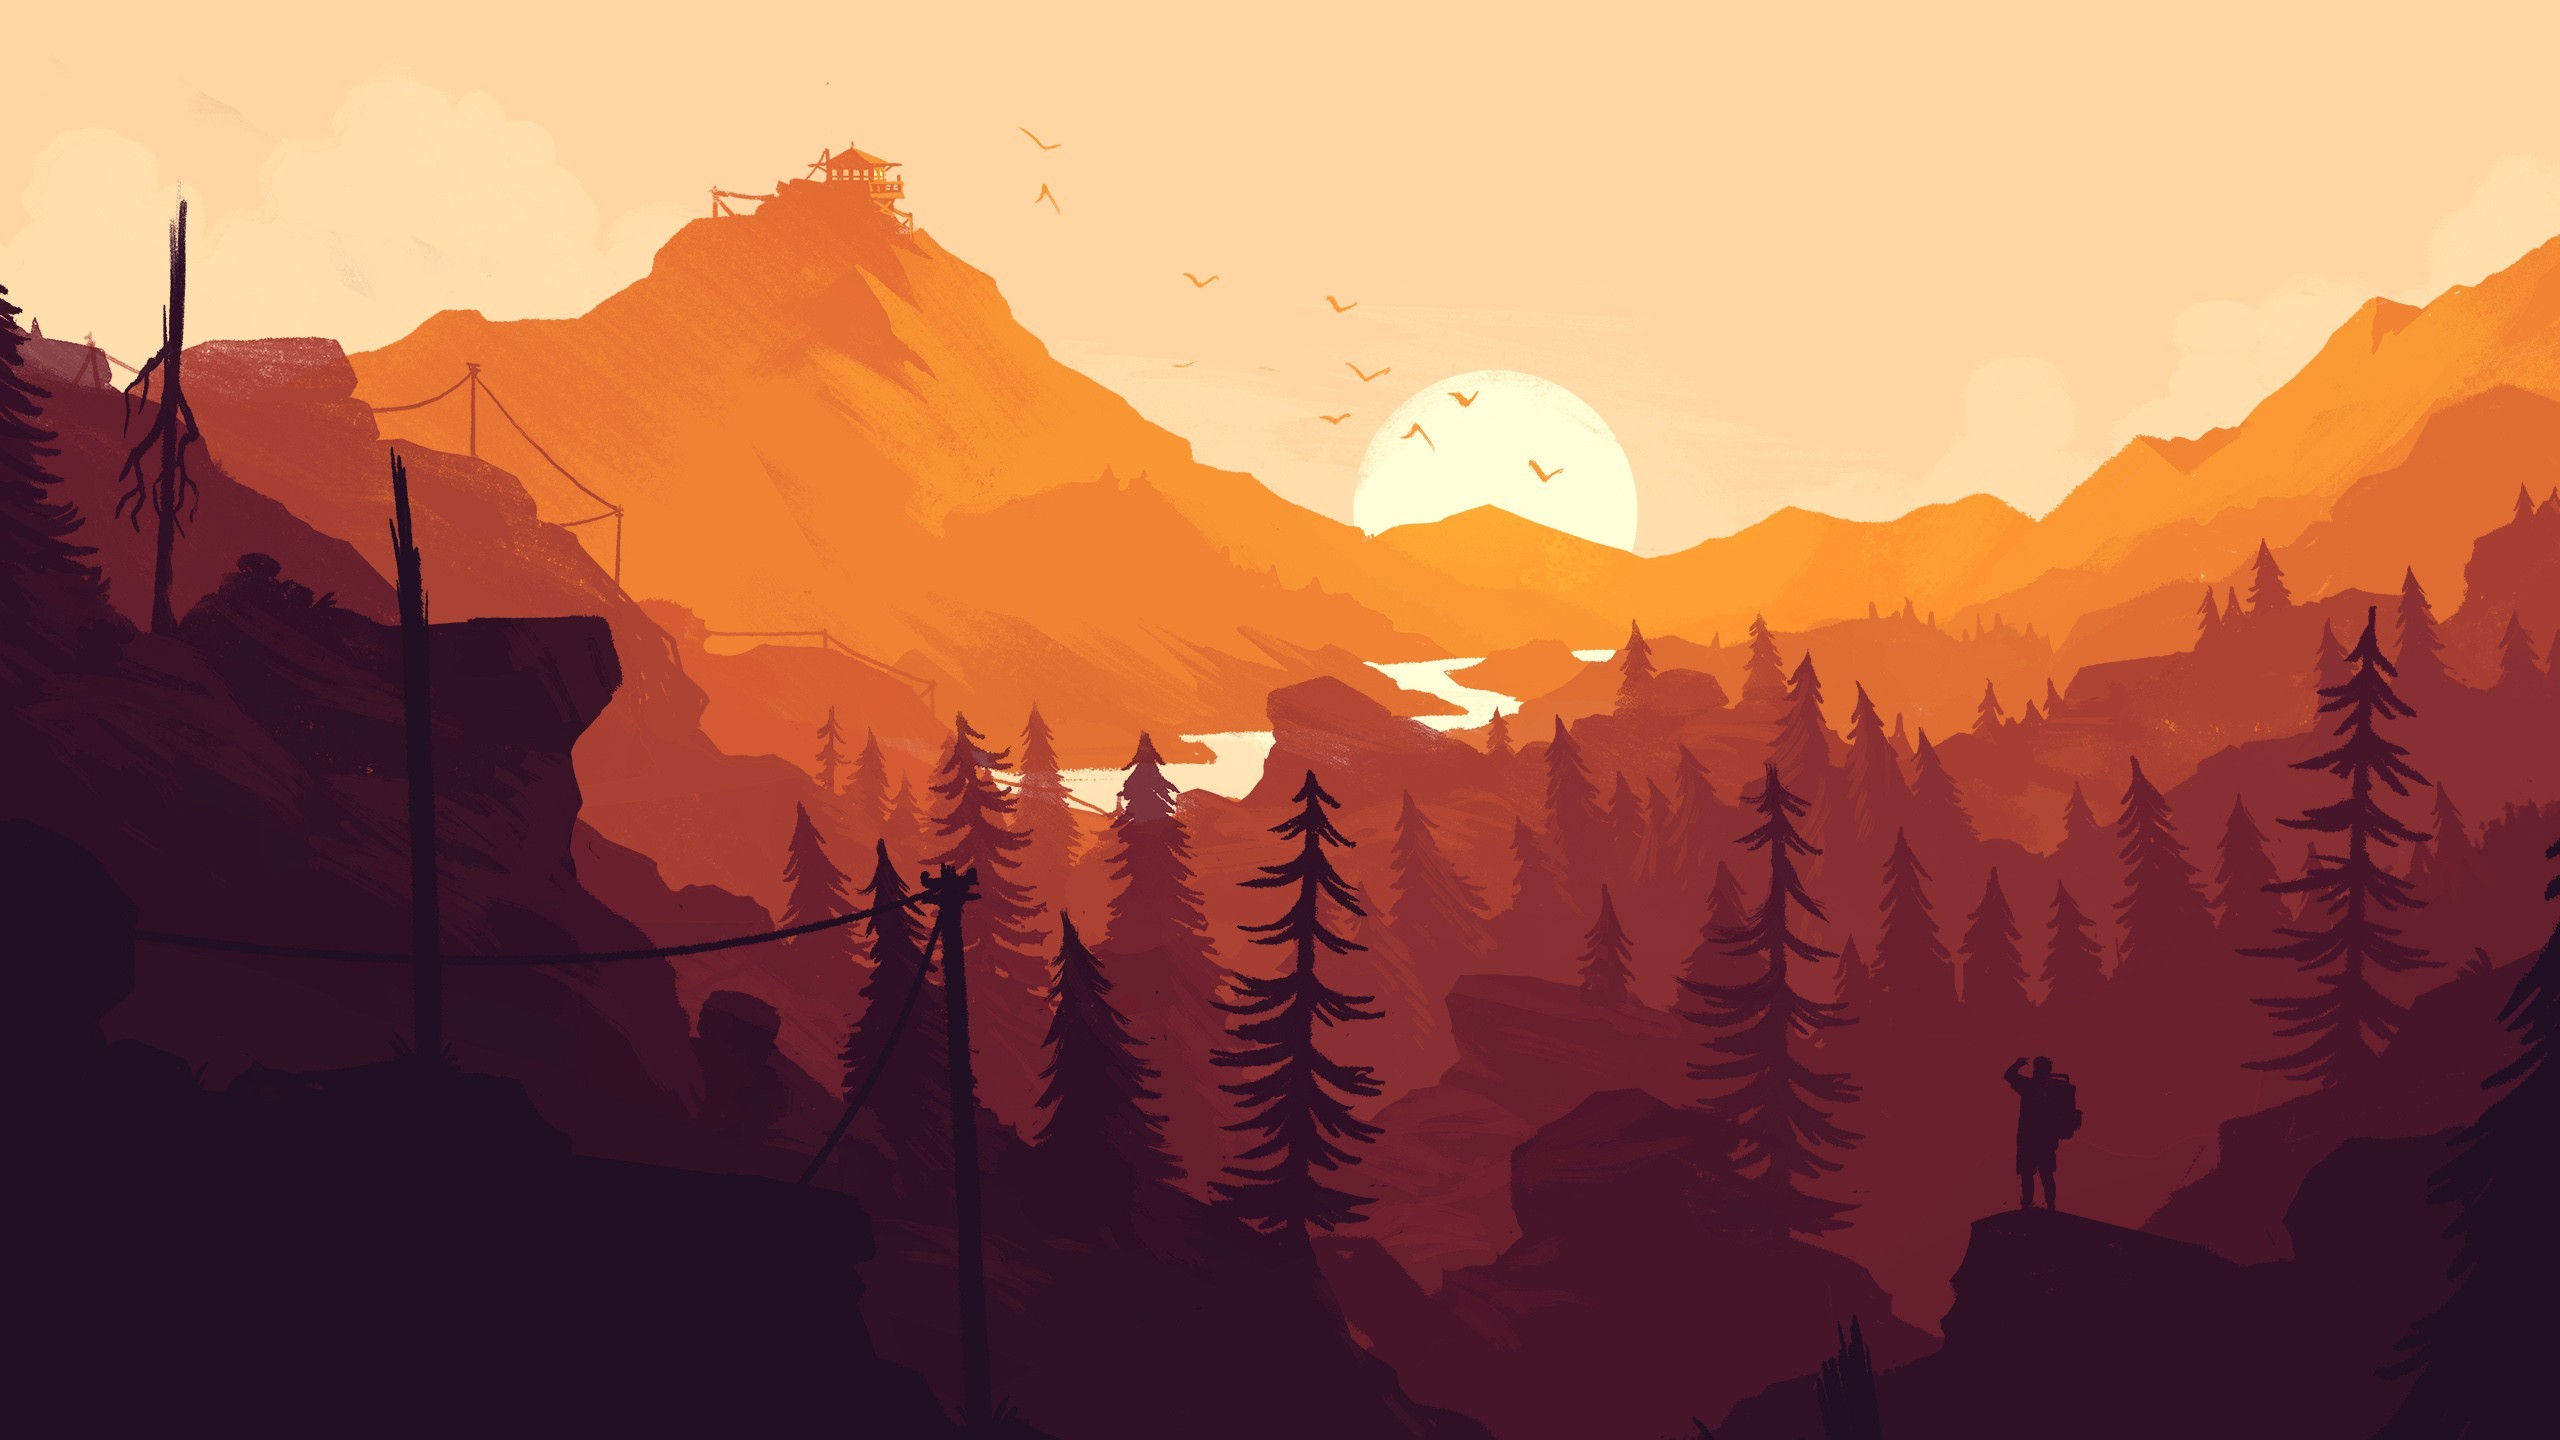 2560x1440 Firewatch Game (1024x768 Resolution)